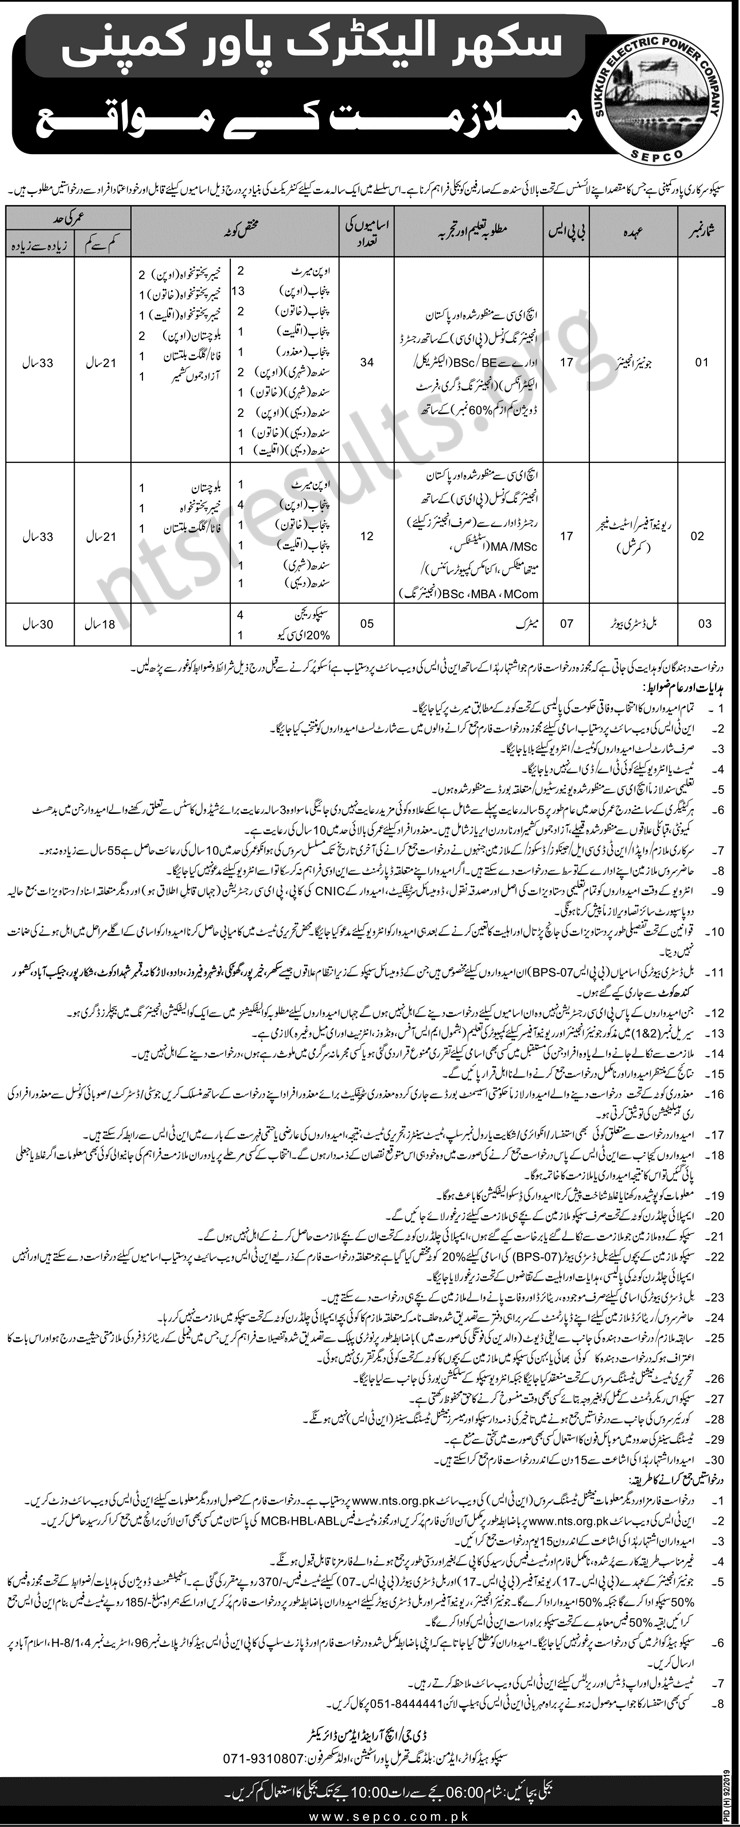 Sukkur Electric Power Company SEPCO Jobs Via NTS